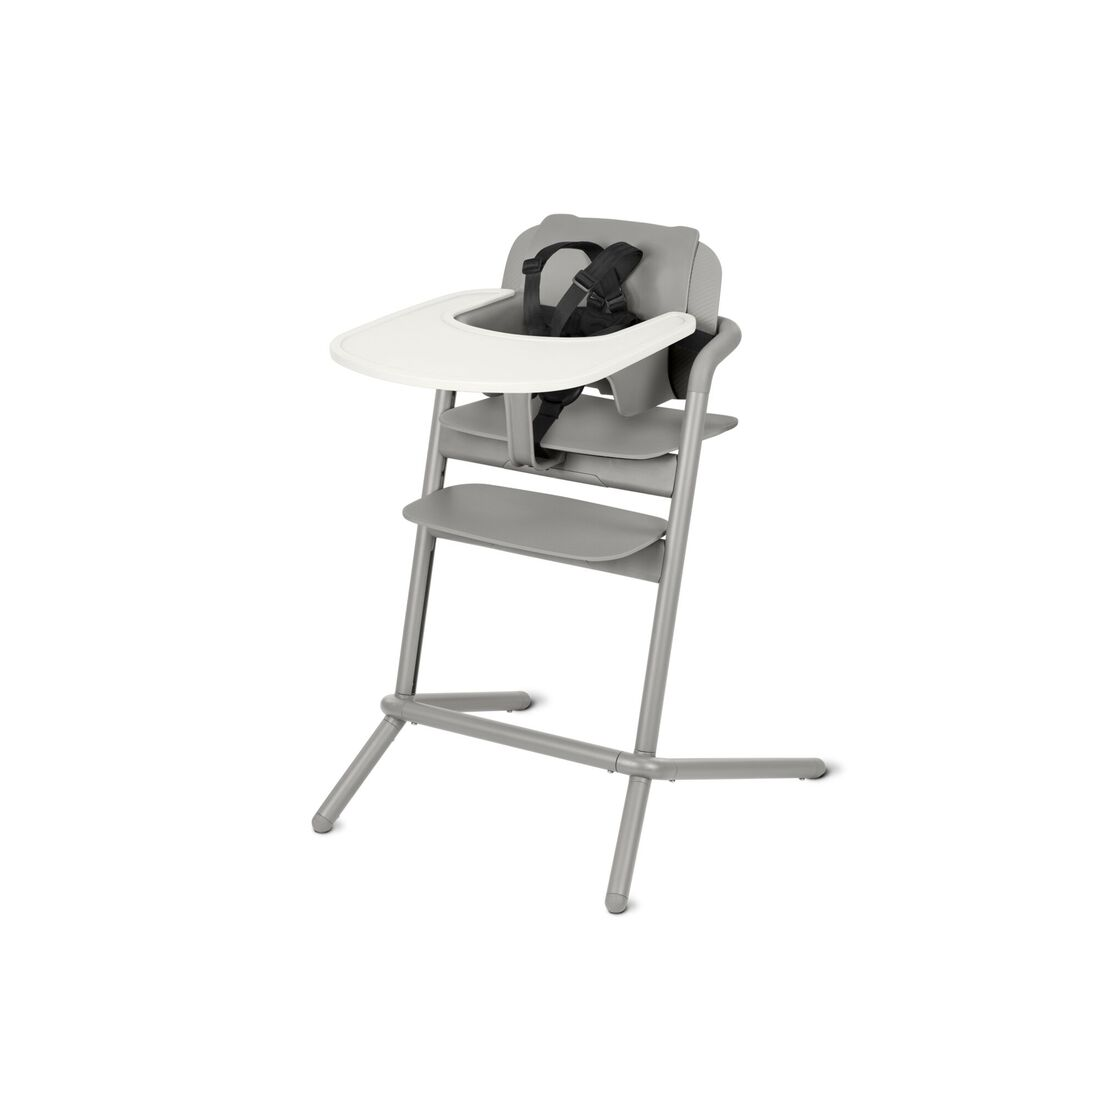 CYBEX Lemo Tray - Porcelaine White in Porcelaine White large image number 1